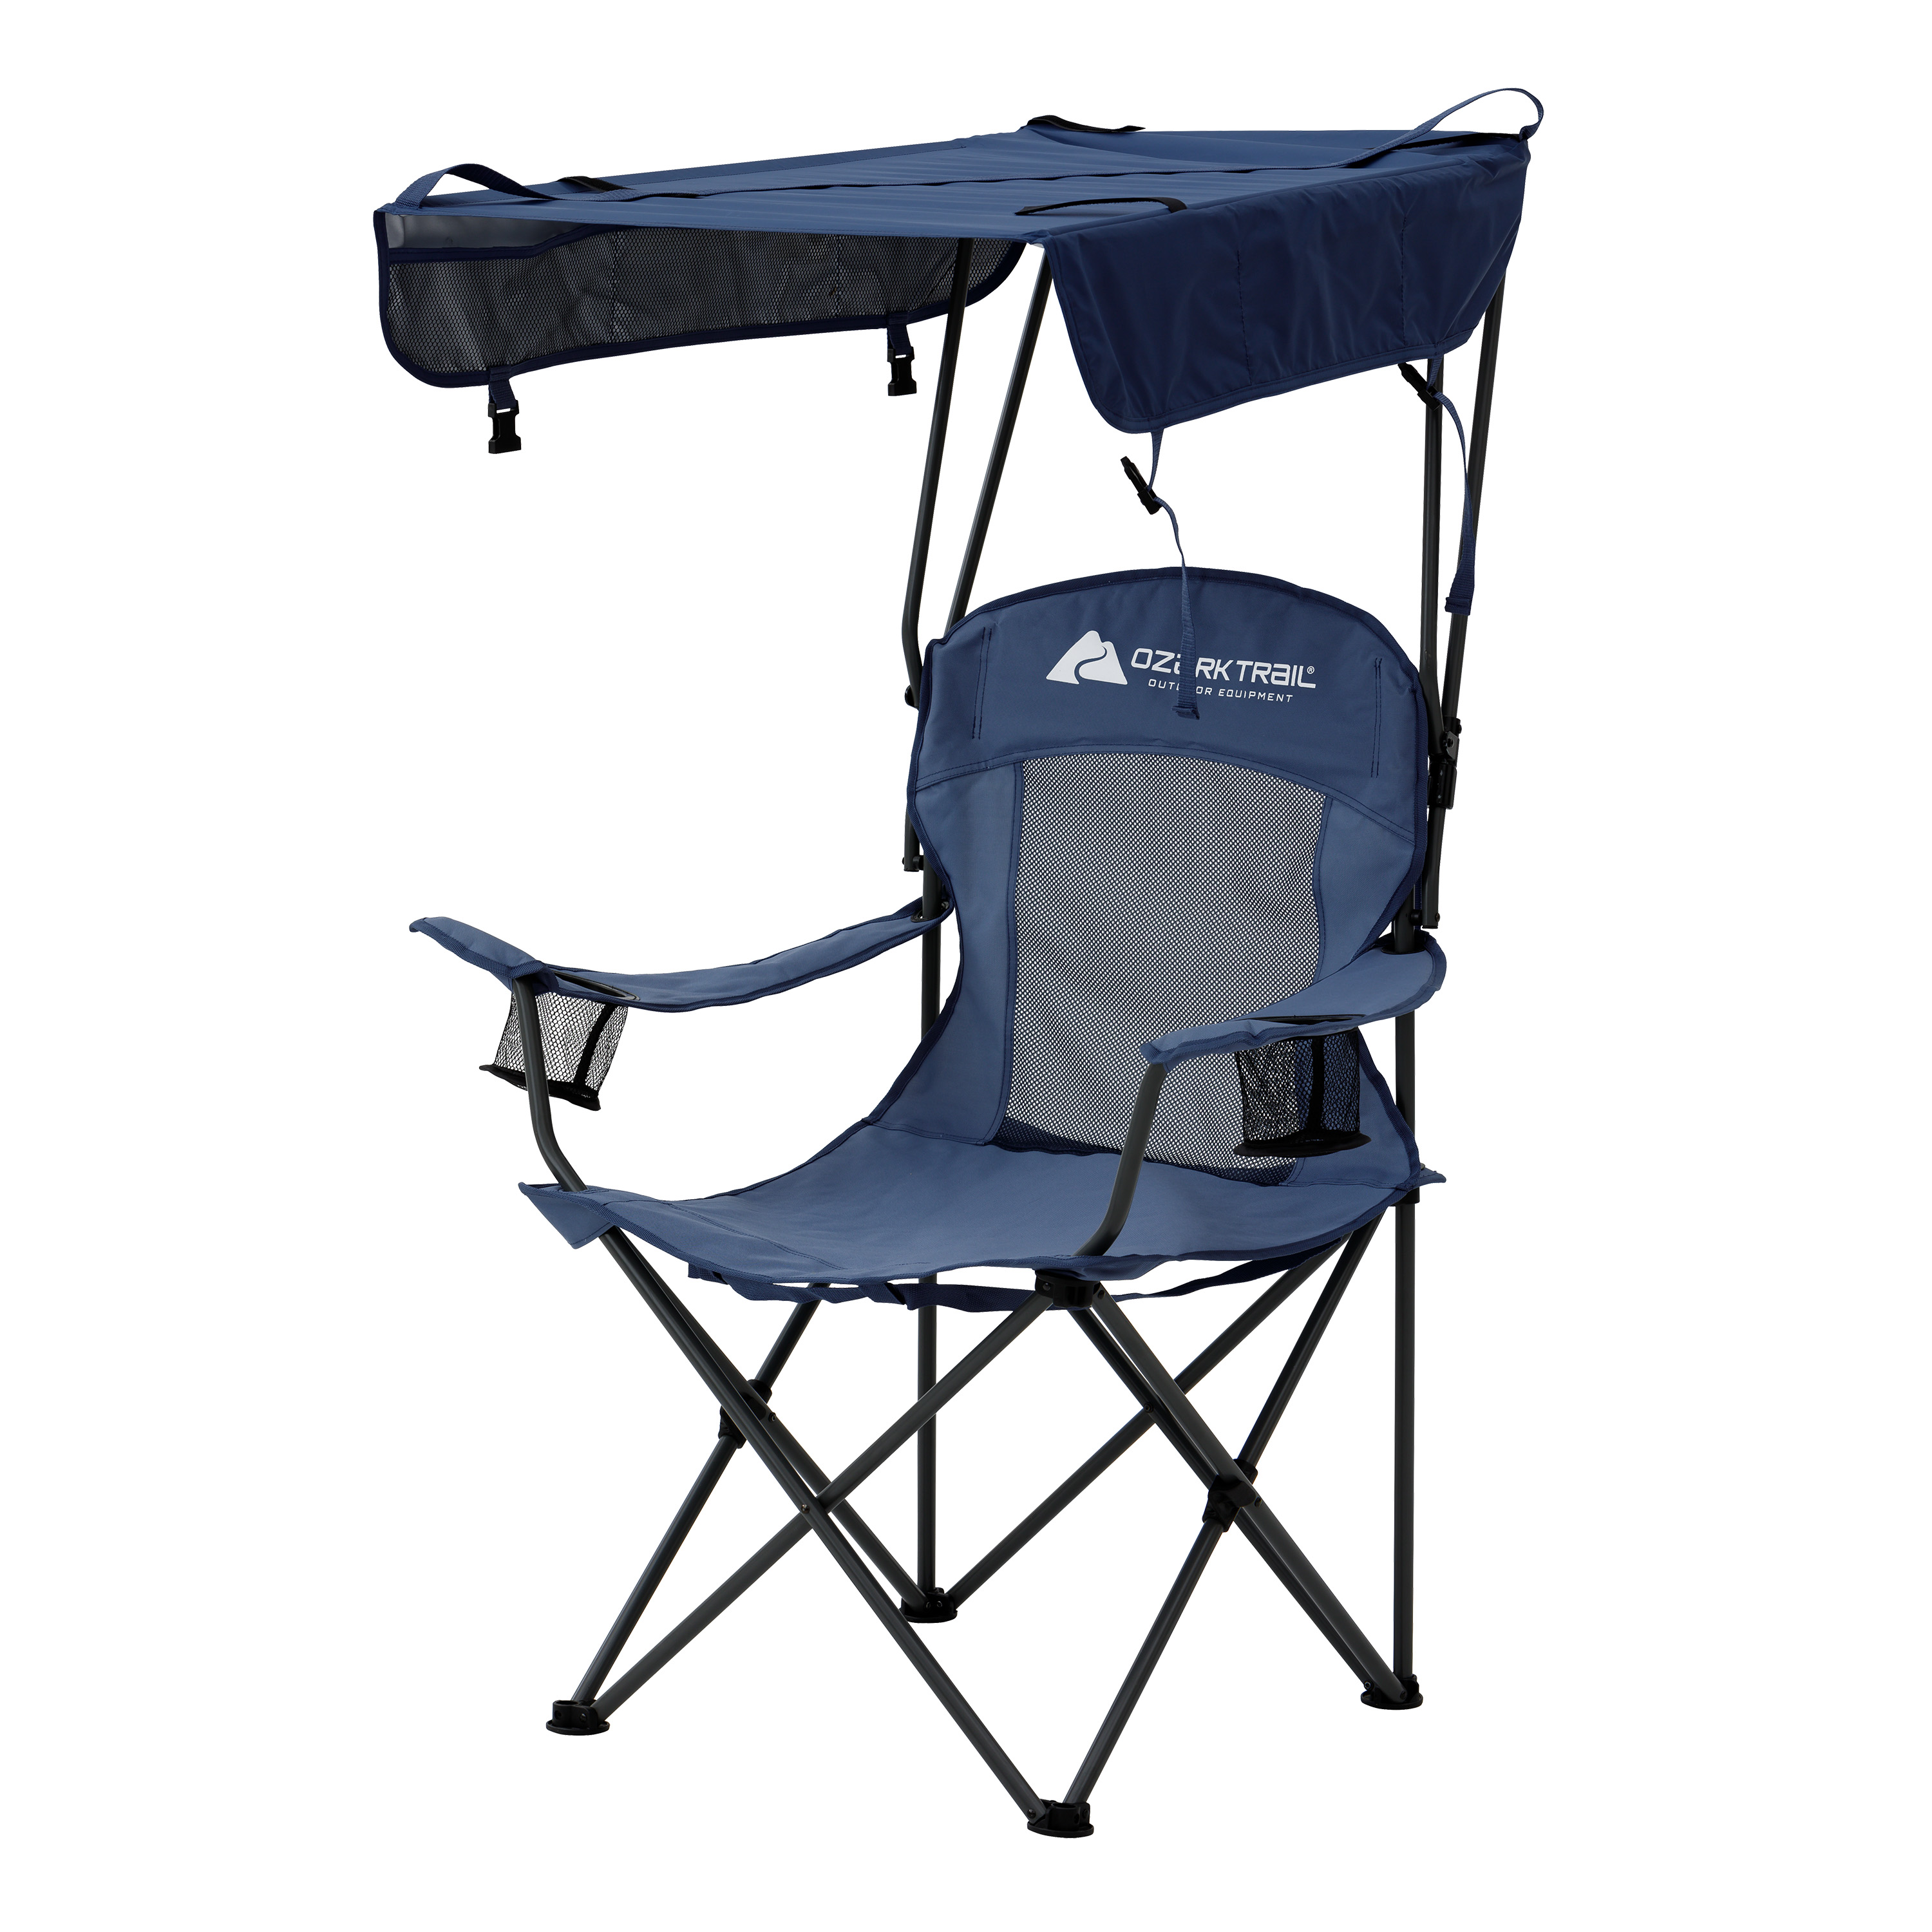 Genial Ozark Trail Sand Island Shaded Canopy Camping Chair With Cup Holders